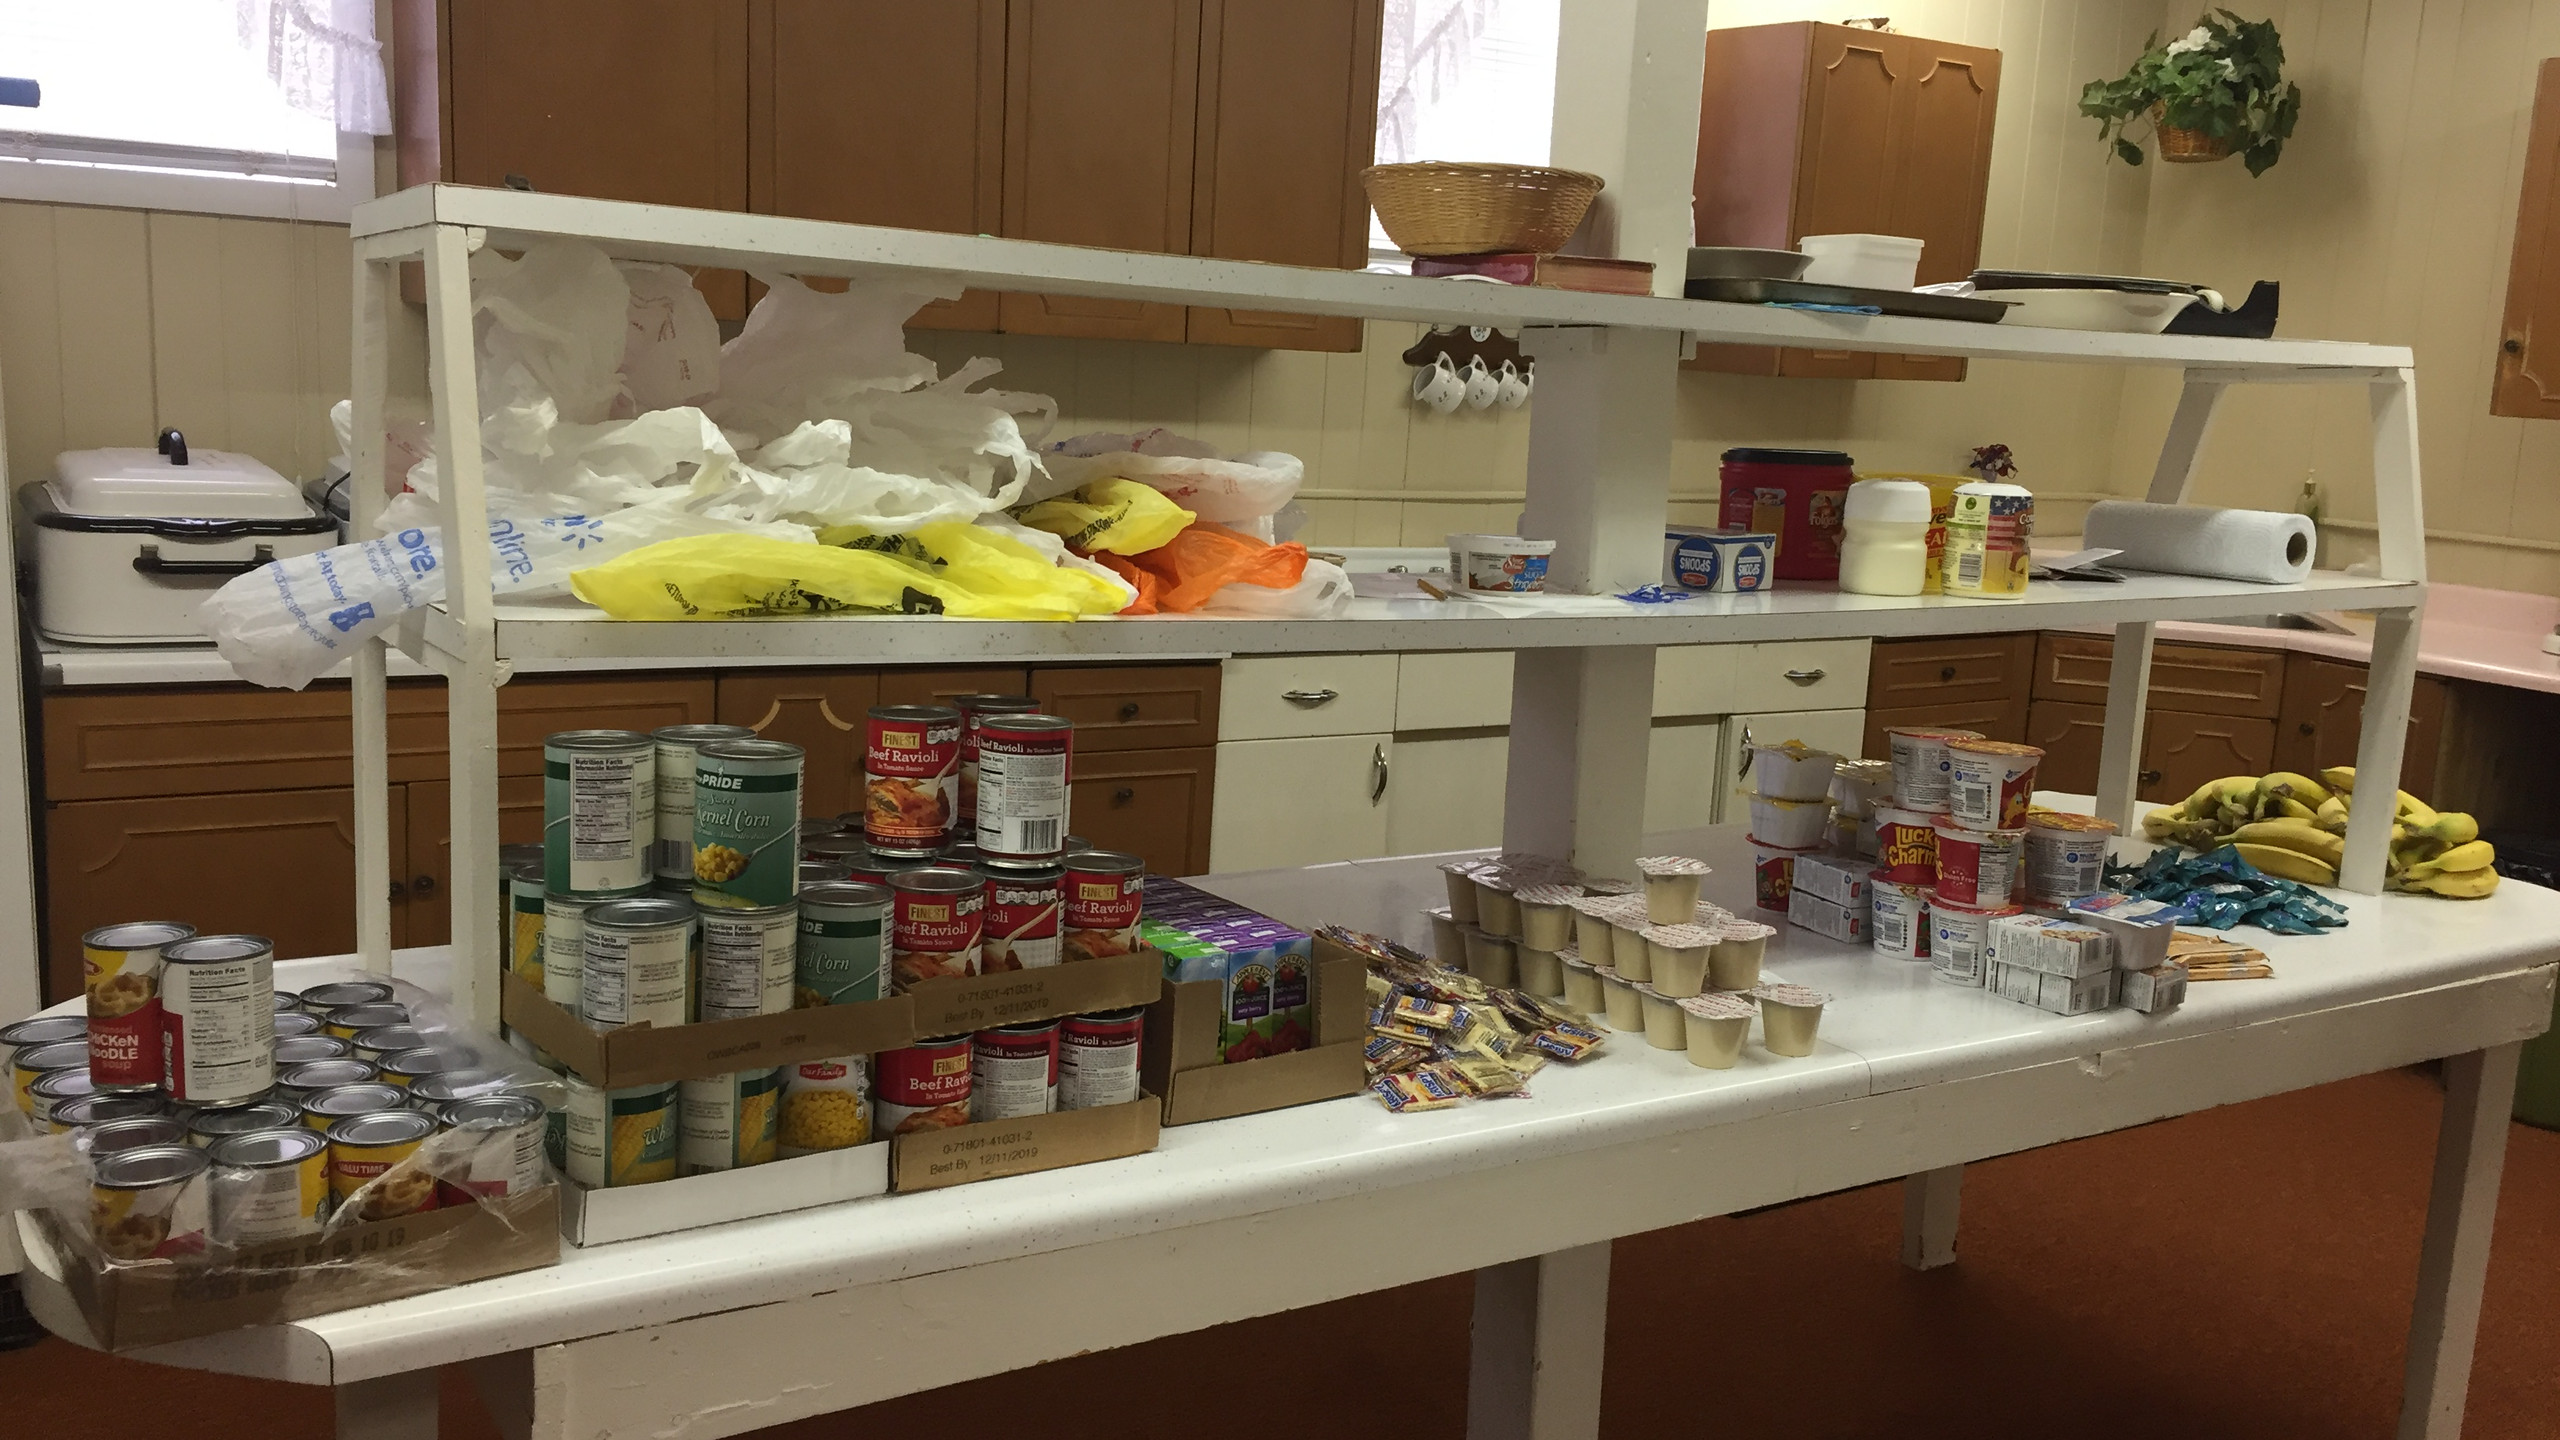 Just a sample of what is distributed each week to needy children.